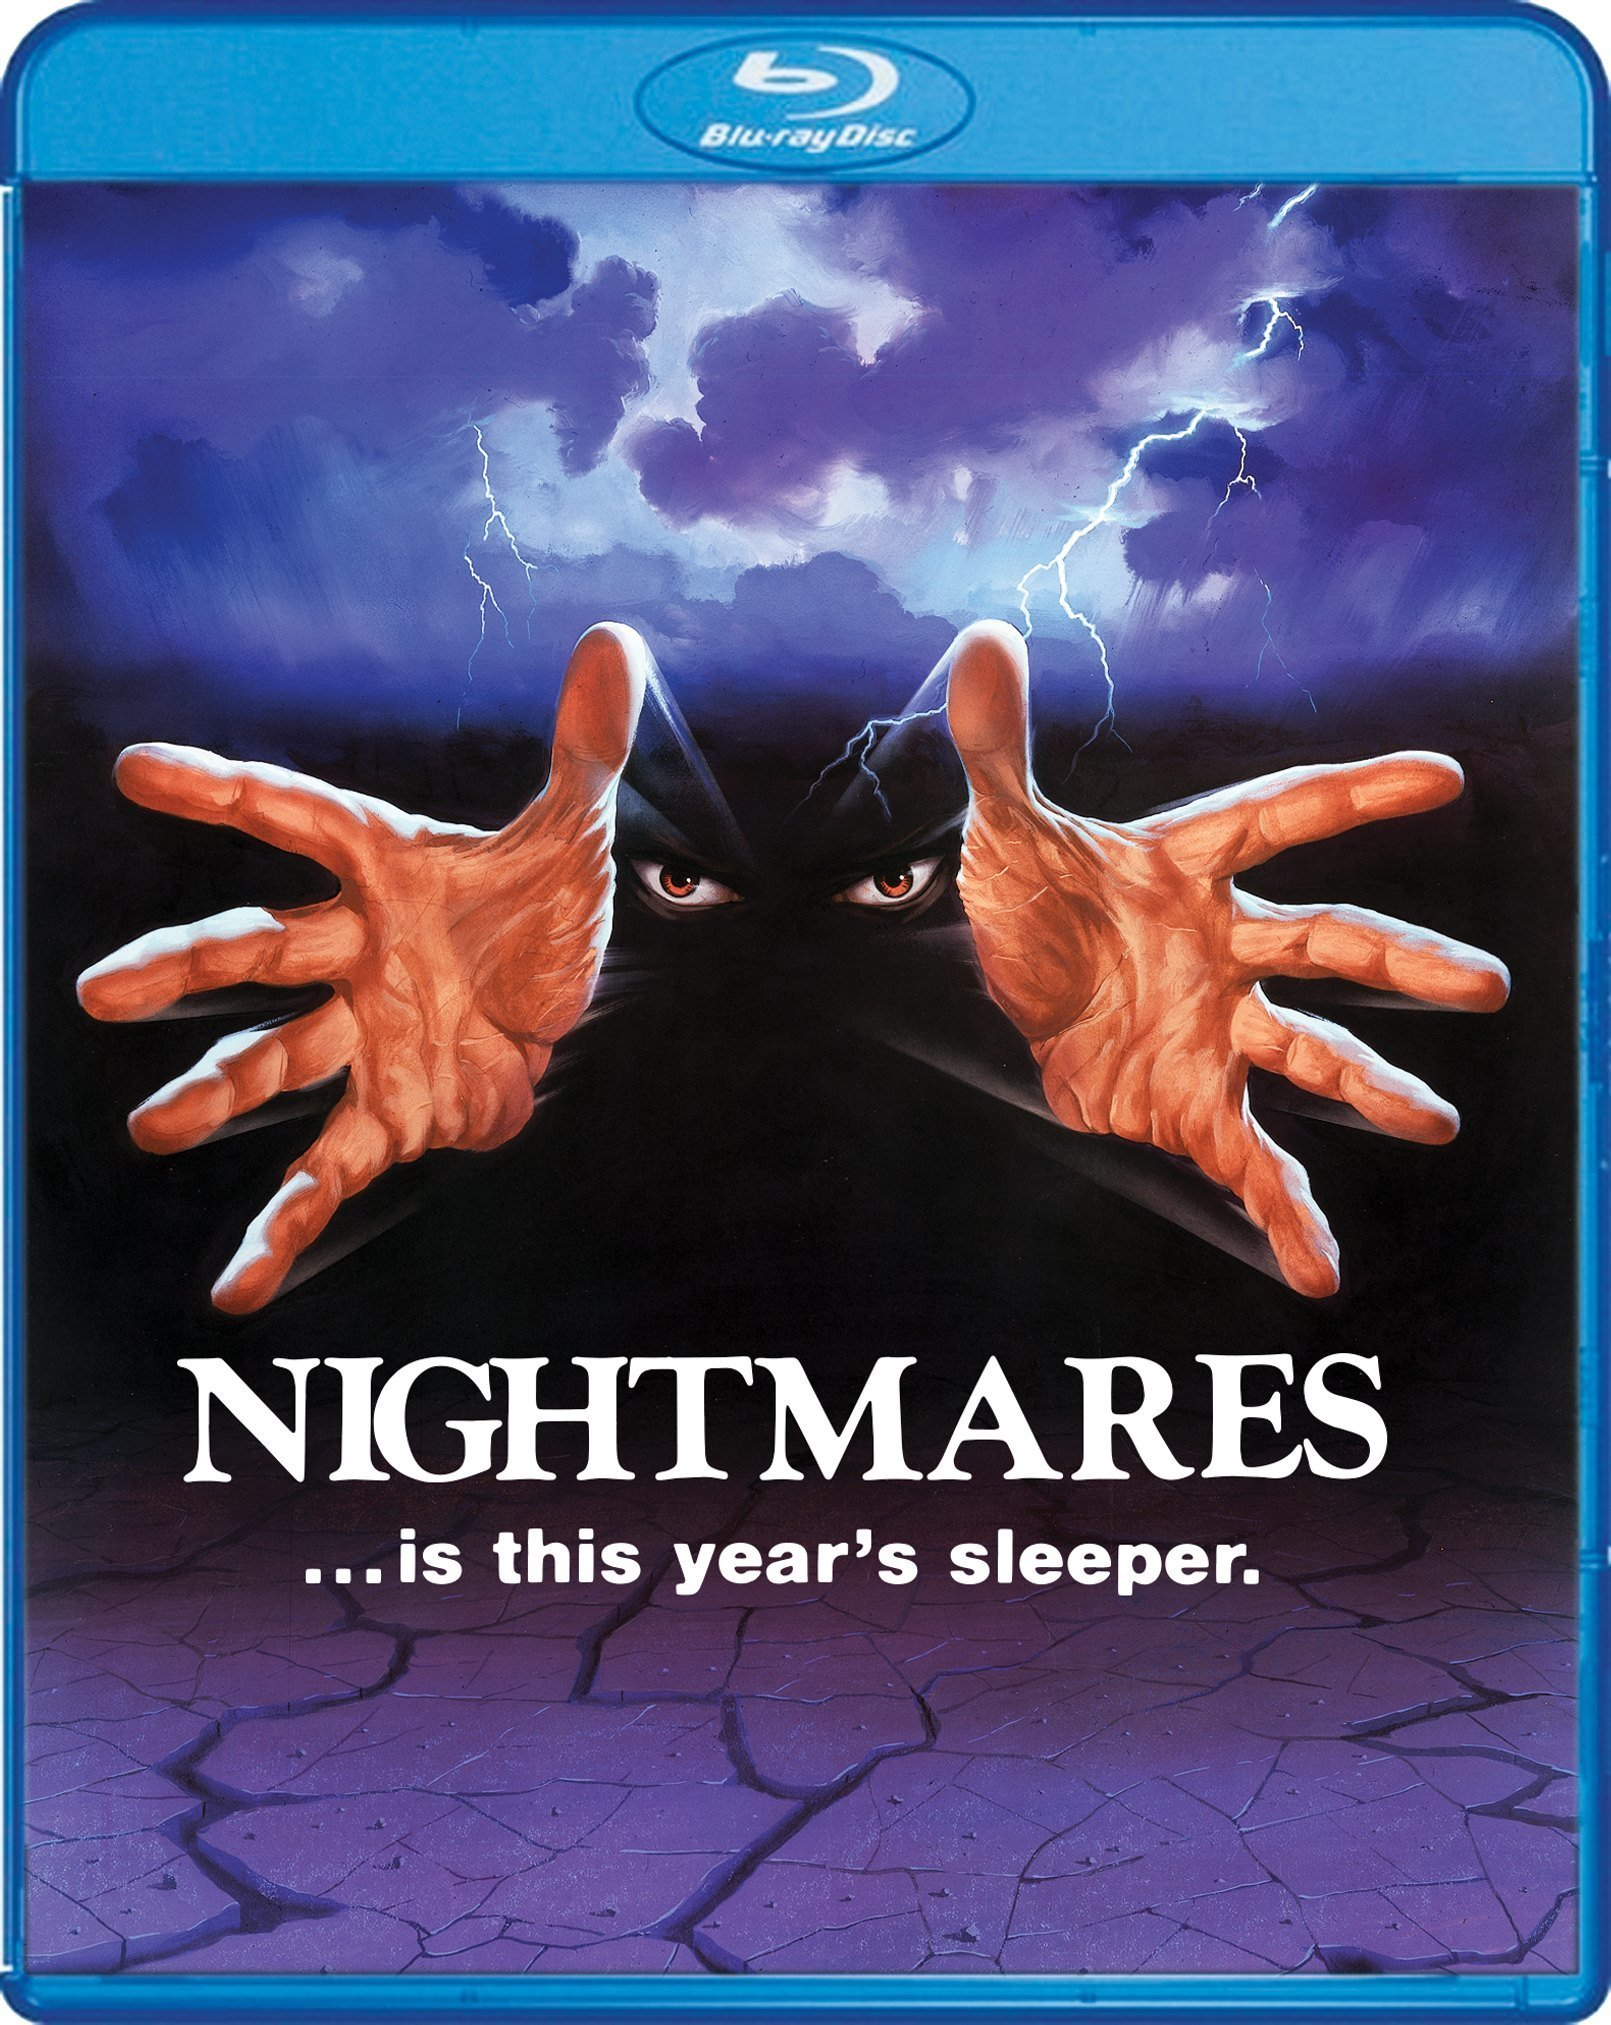 Nightmares (1983) foreign VHS box art   Horror movie art  Horror Movie Nightmares